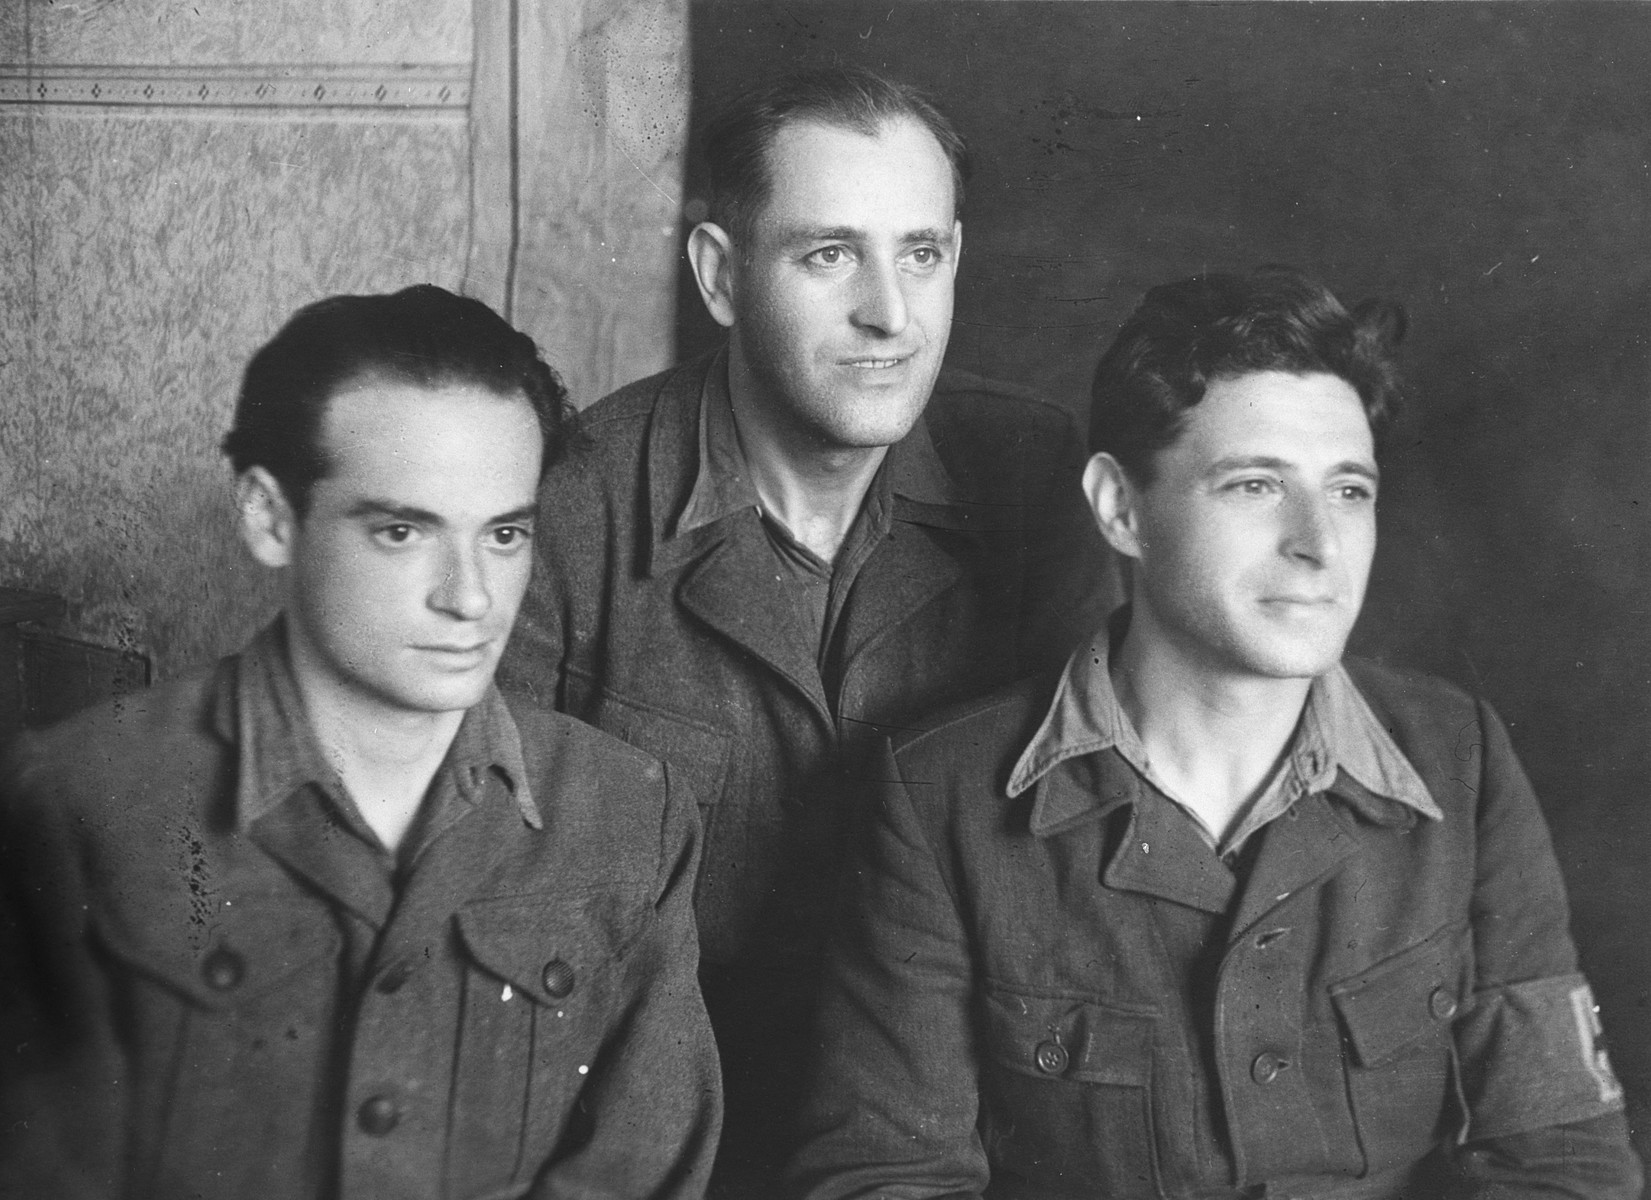 Portrait of three Hungarian-Jews captured while in a forced labor brigade and sent to a Soviet Prisoner of War camp in Gorky.  Denes Simonyi is pictured on the left.  In the center is Jozsef Kupfer, and on the right is Marton Klein.